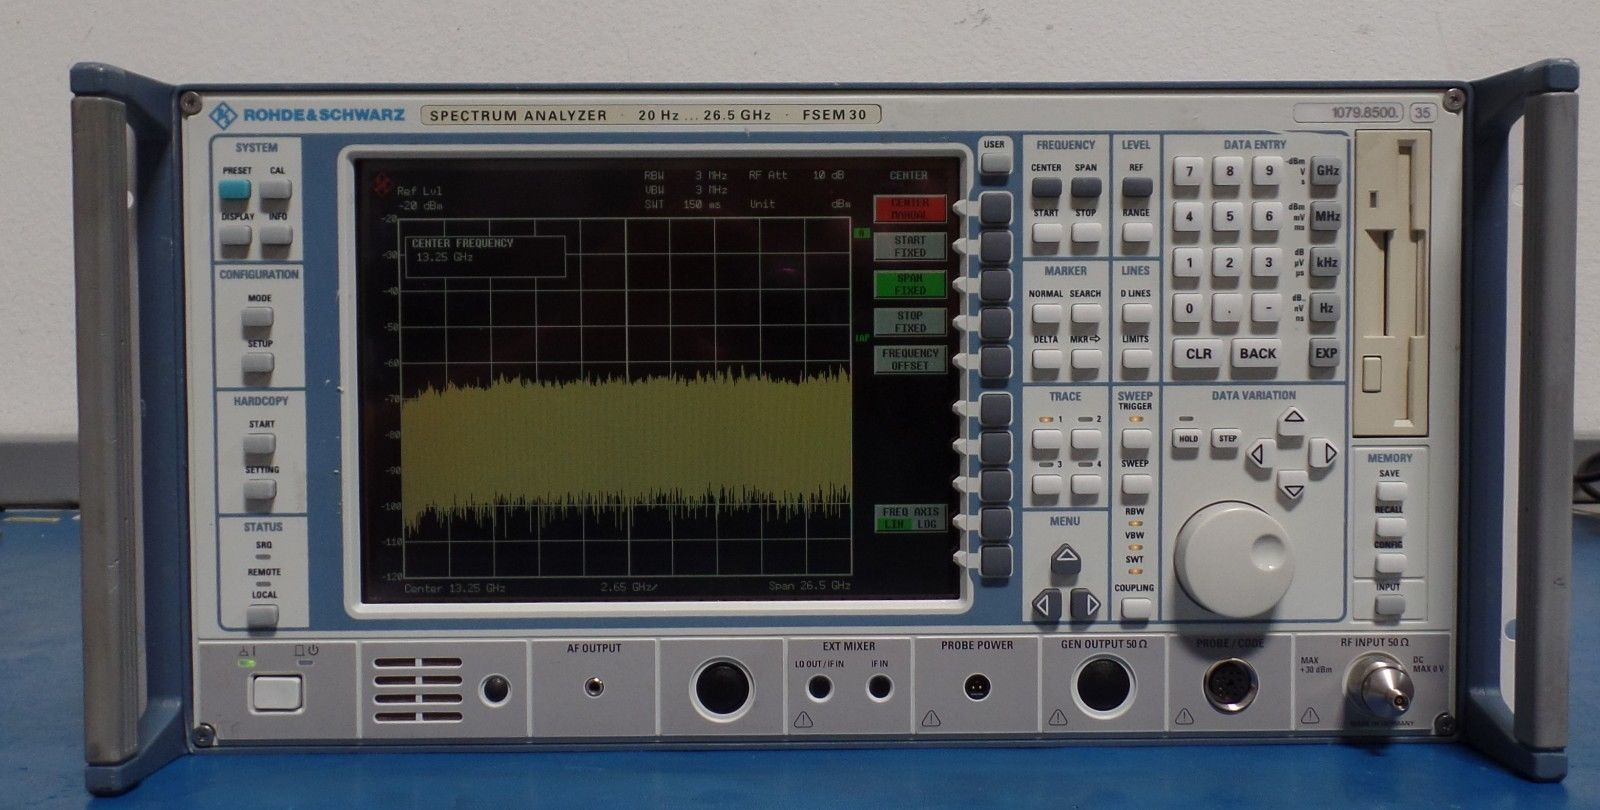 r-s-rohde-schwarz-fsem30-20hz-26-5-ghz-spectrum-analyzer-used-equipment-0.jpg